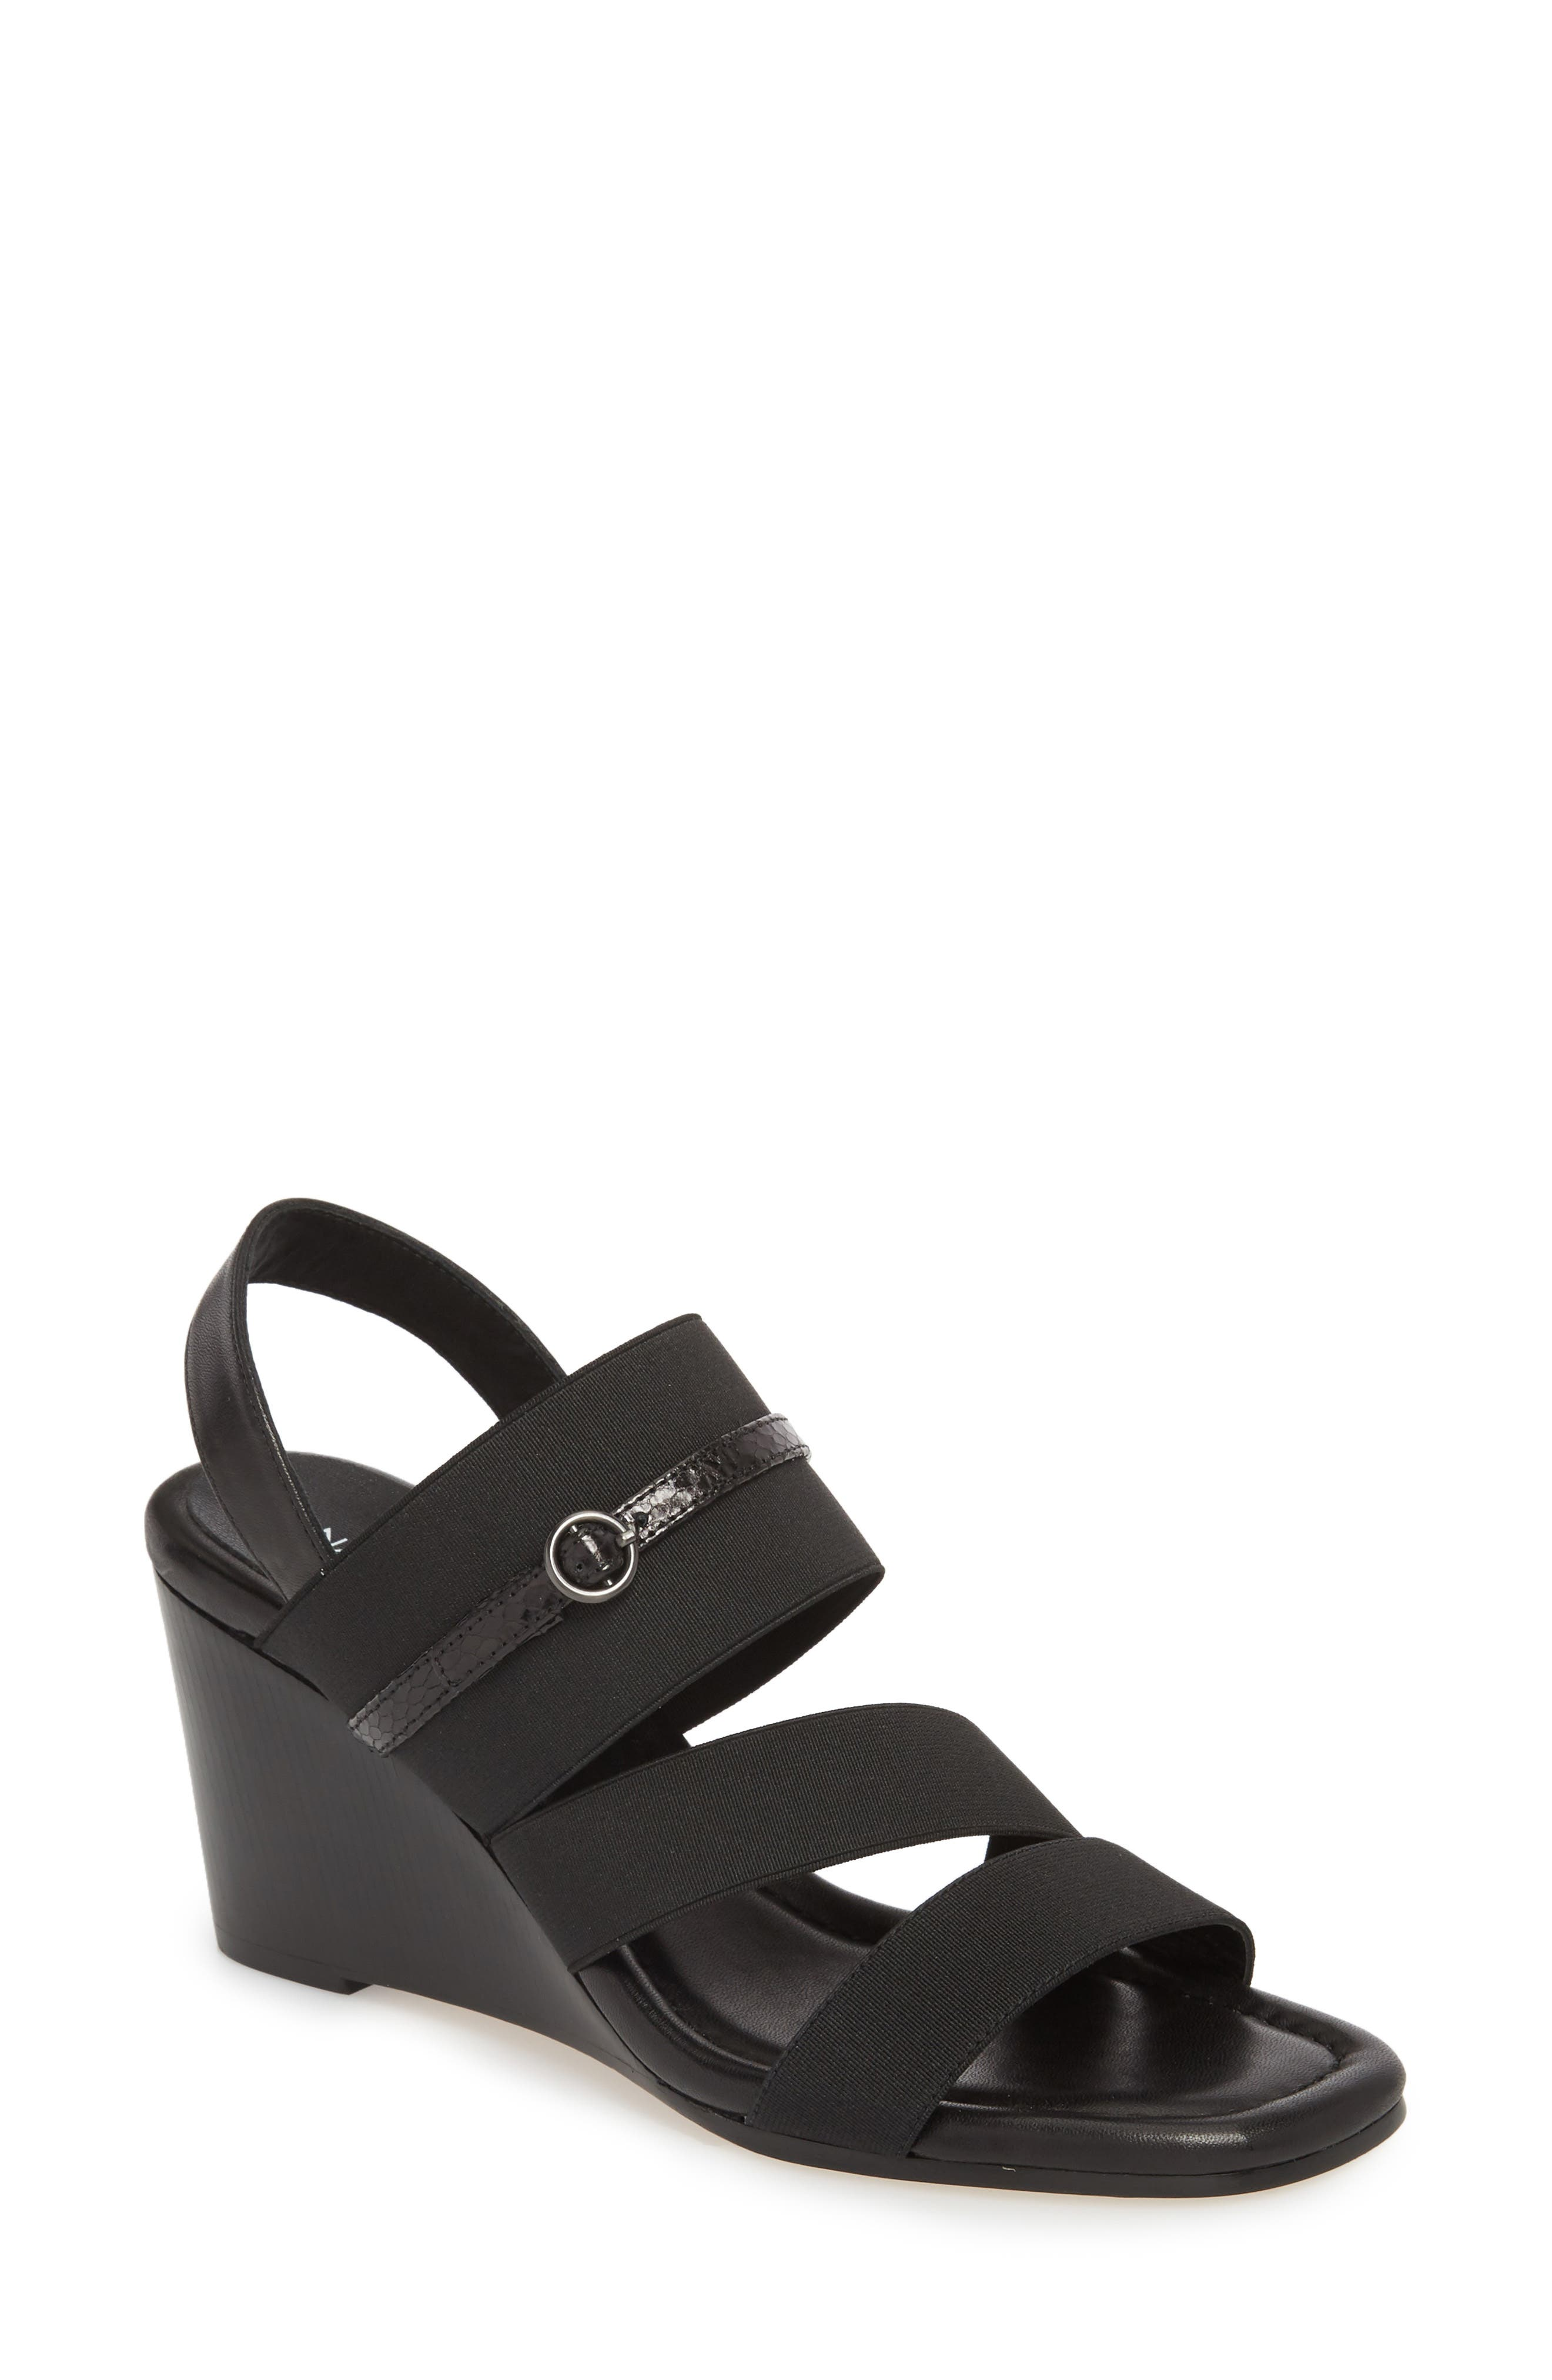 DONALD J PLINER LEIGH WEDGE SANDAL